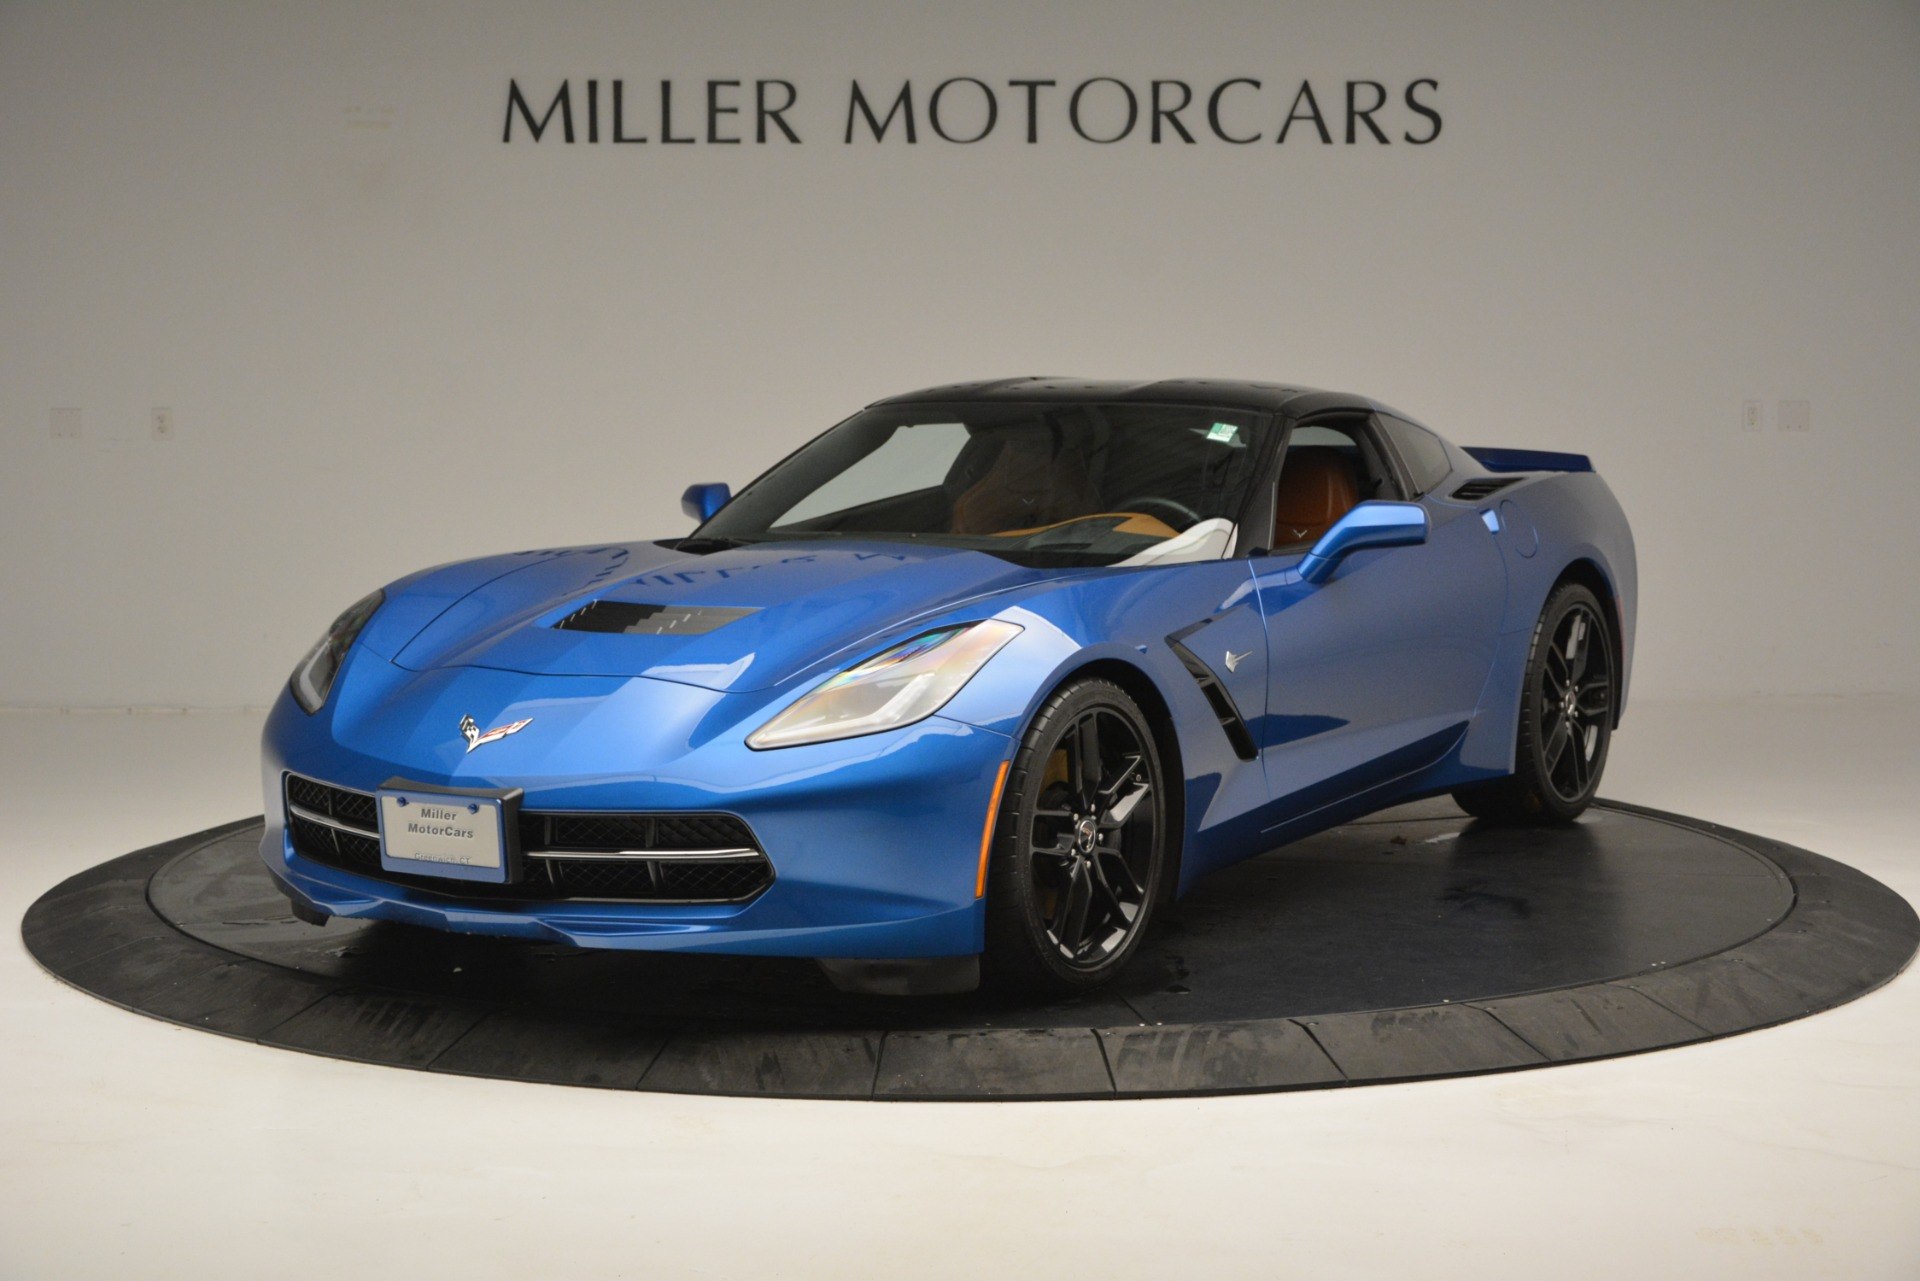 Used 2014 Chevrolet Corvette Stingray Z51 for sale Sold at Bugatti of Greenwich in Greenwich CT 06830 1